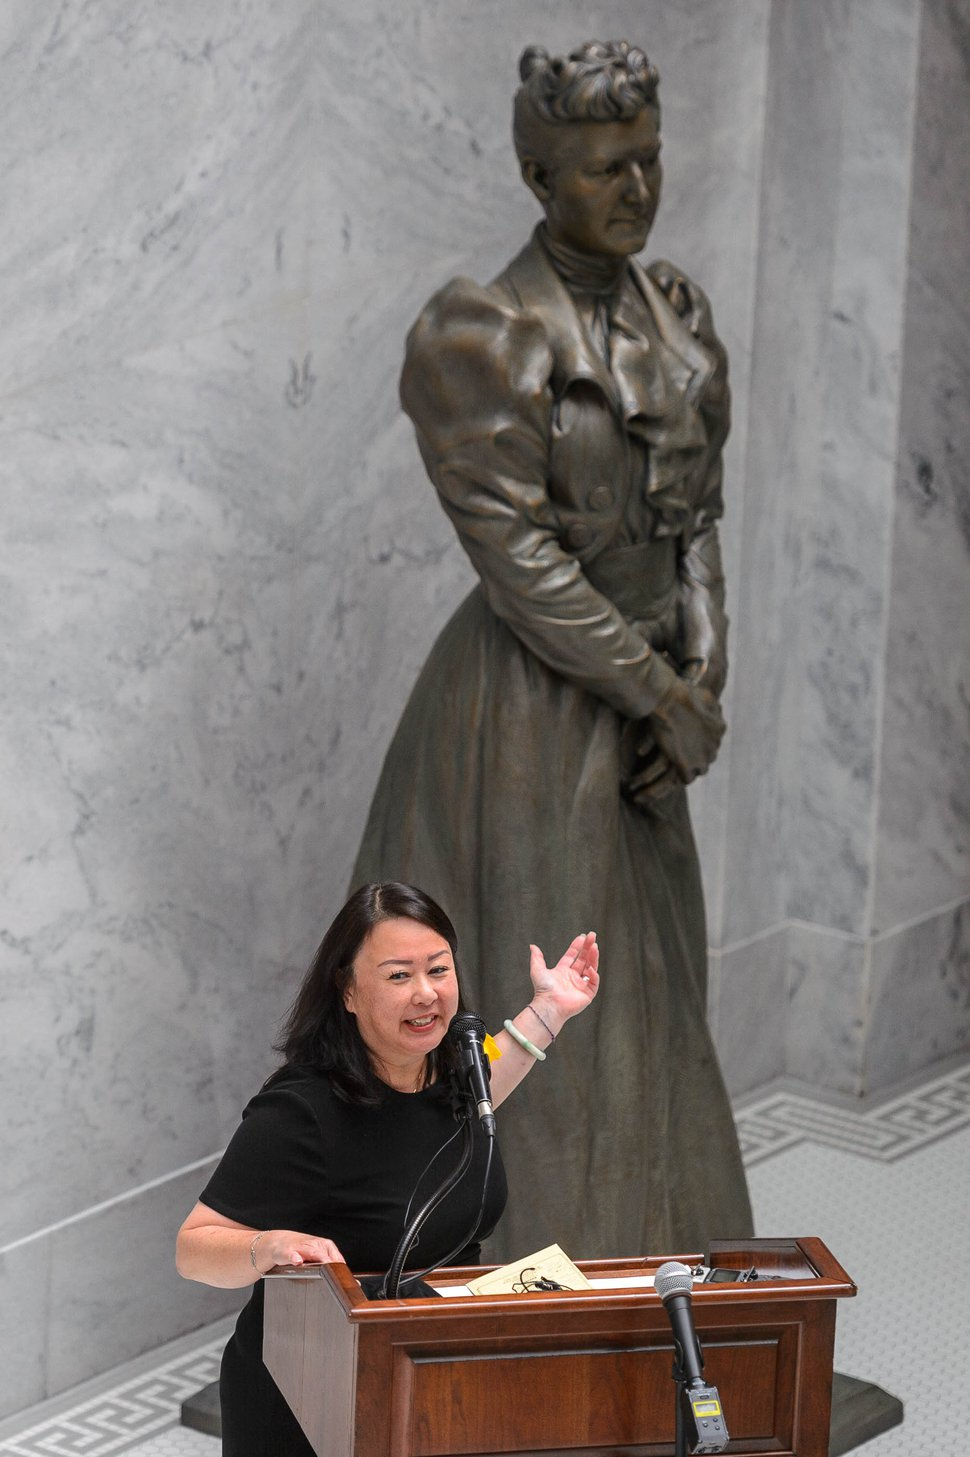 (Trent Nelson | The Salt Lake Tribune) Rep. Karen Kwan, D-Murray, speaks at the unveiling of the Martha Hughes Cannon statue, at the State Capitol in Salt Lake City on Monday, Sept. 14, 2020. The piece will temporarily be on display in the Utah State Capitol until COVID-19 restrictions allow for a ceremony in Washington, D.C.